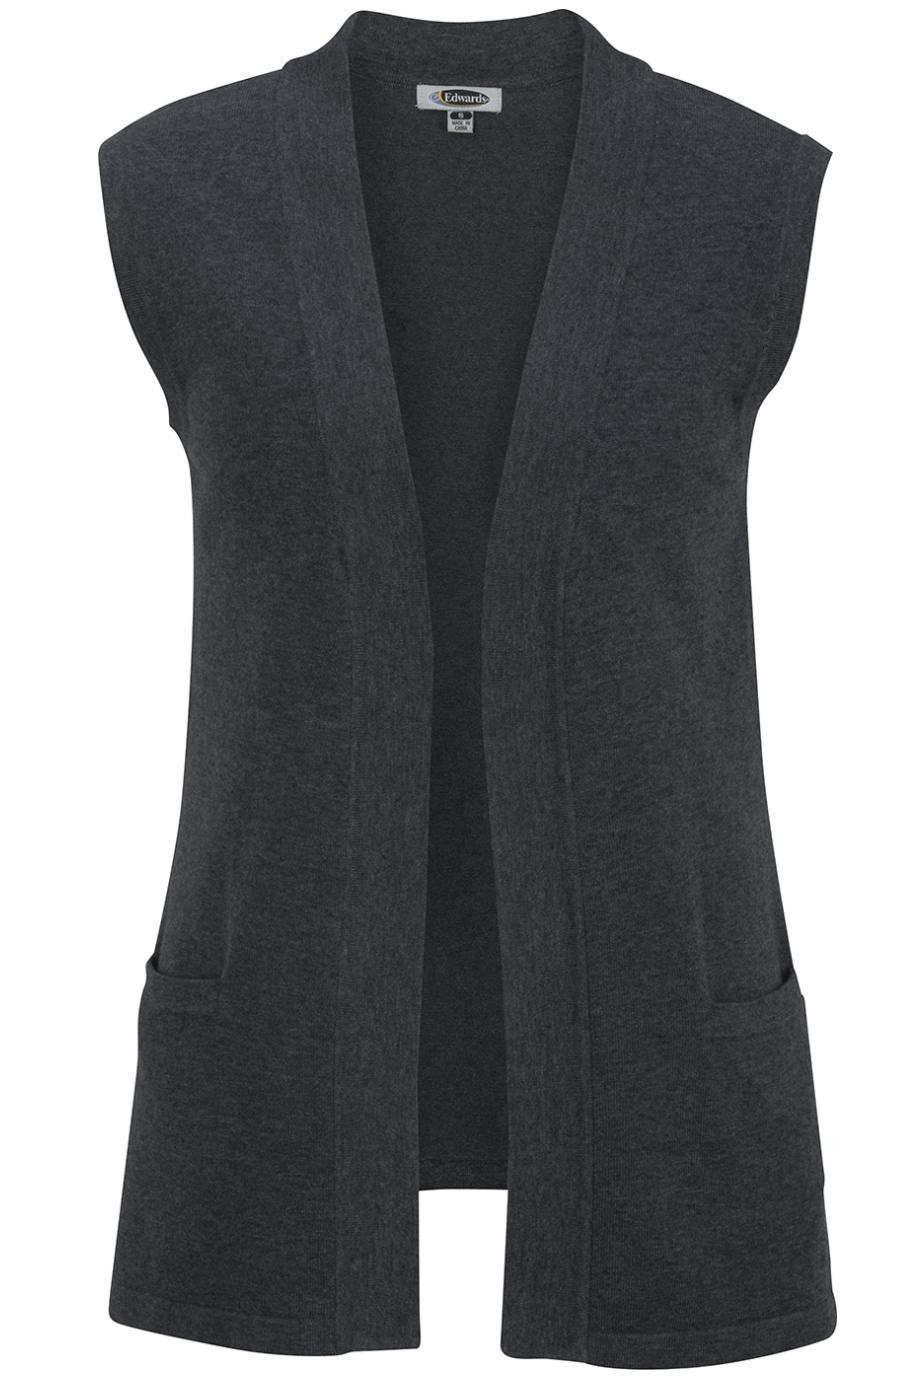 EDWARDS LADIES' OPEN CARDIGAN SWEATER VEST - New Products